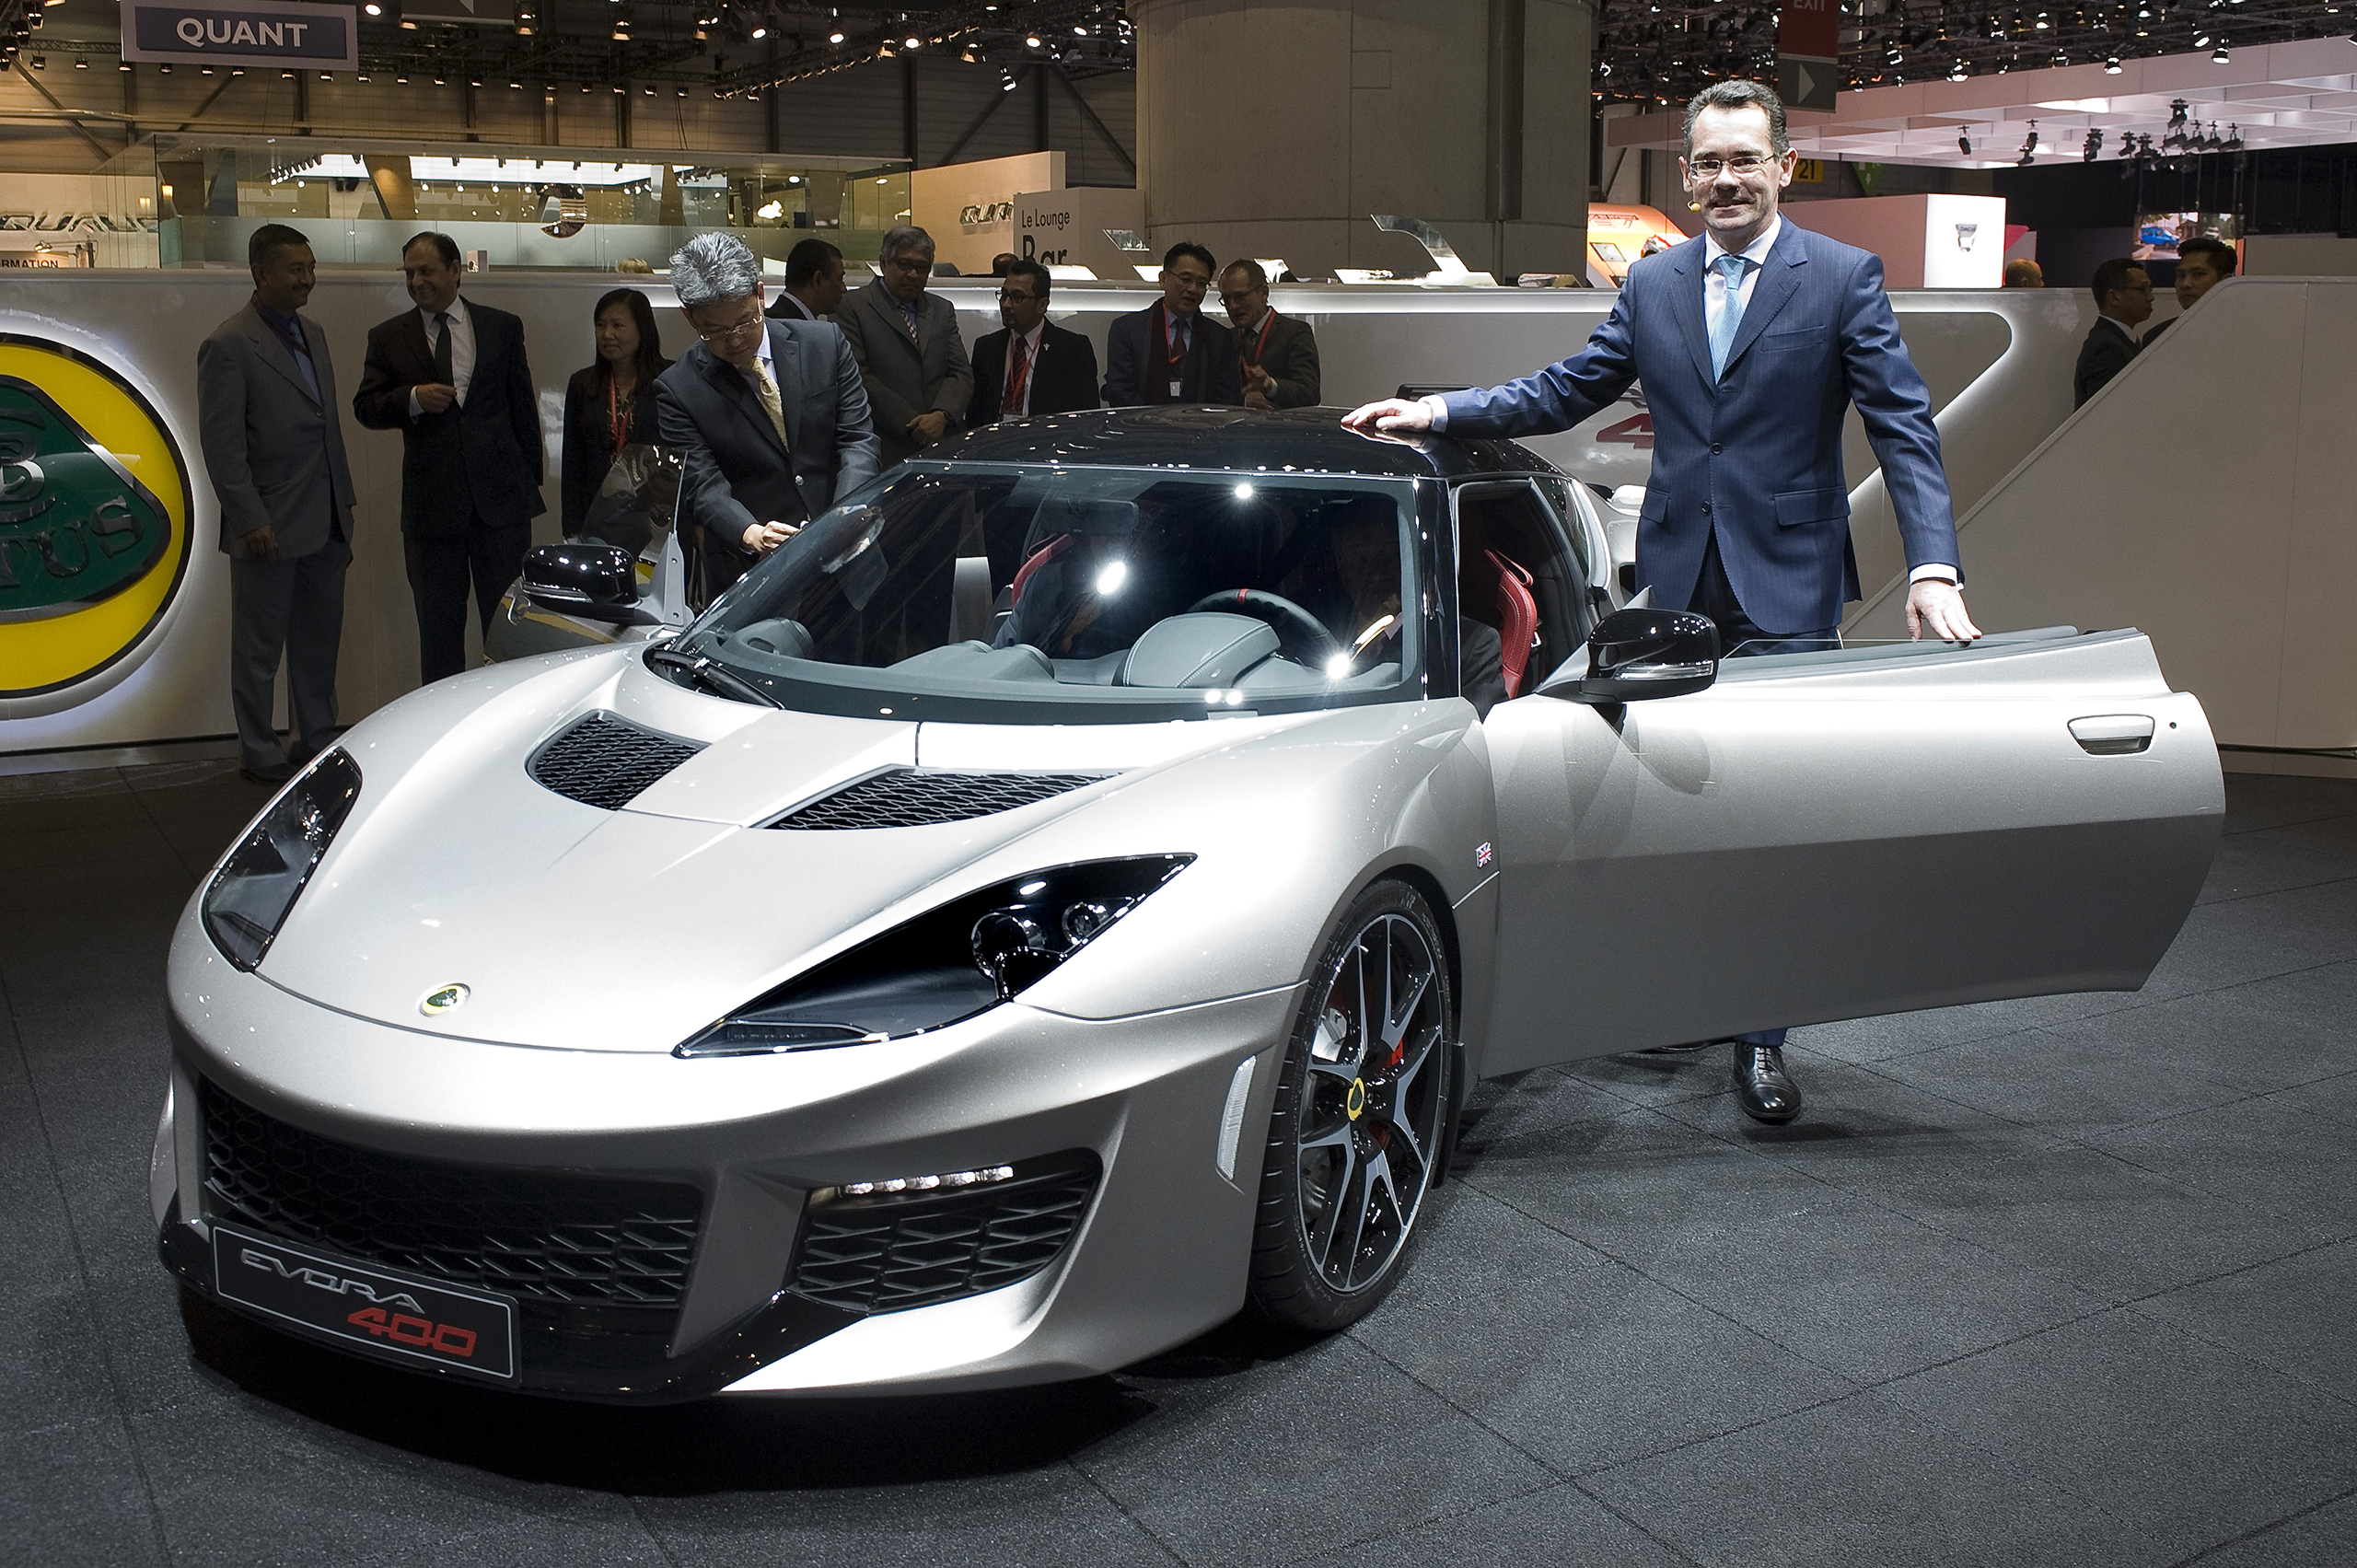 lotus evora 400 unveiled in geneva by tun mahathir image